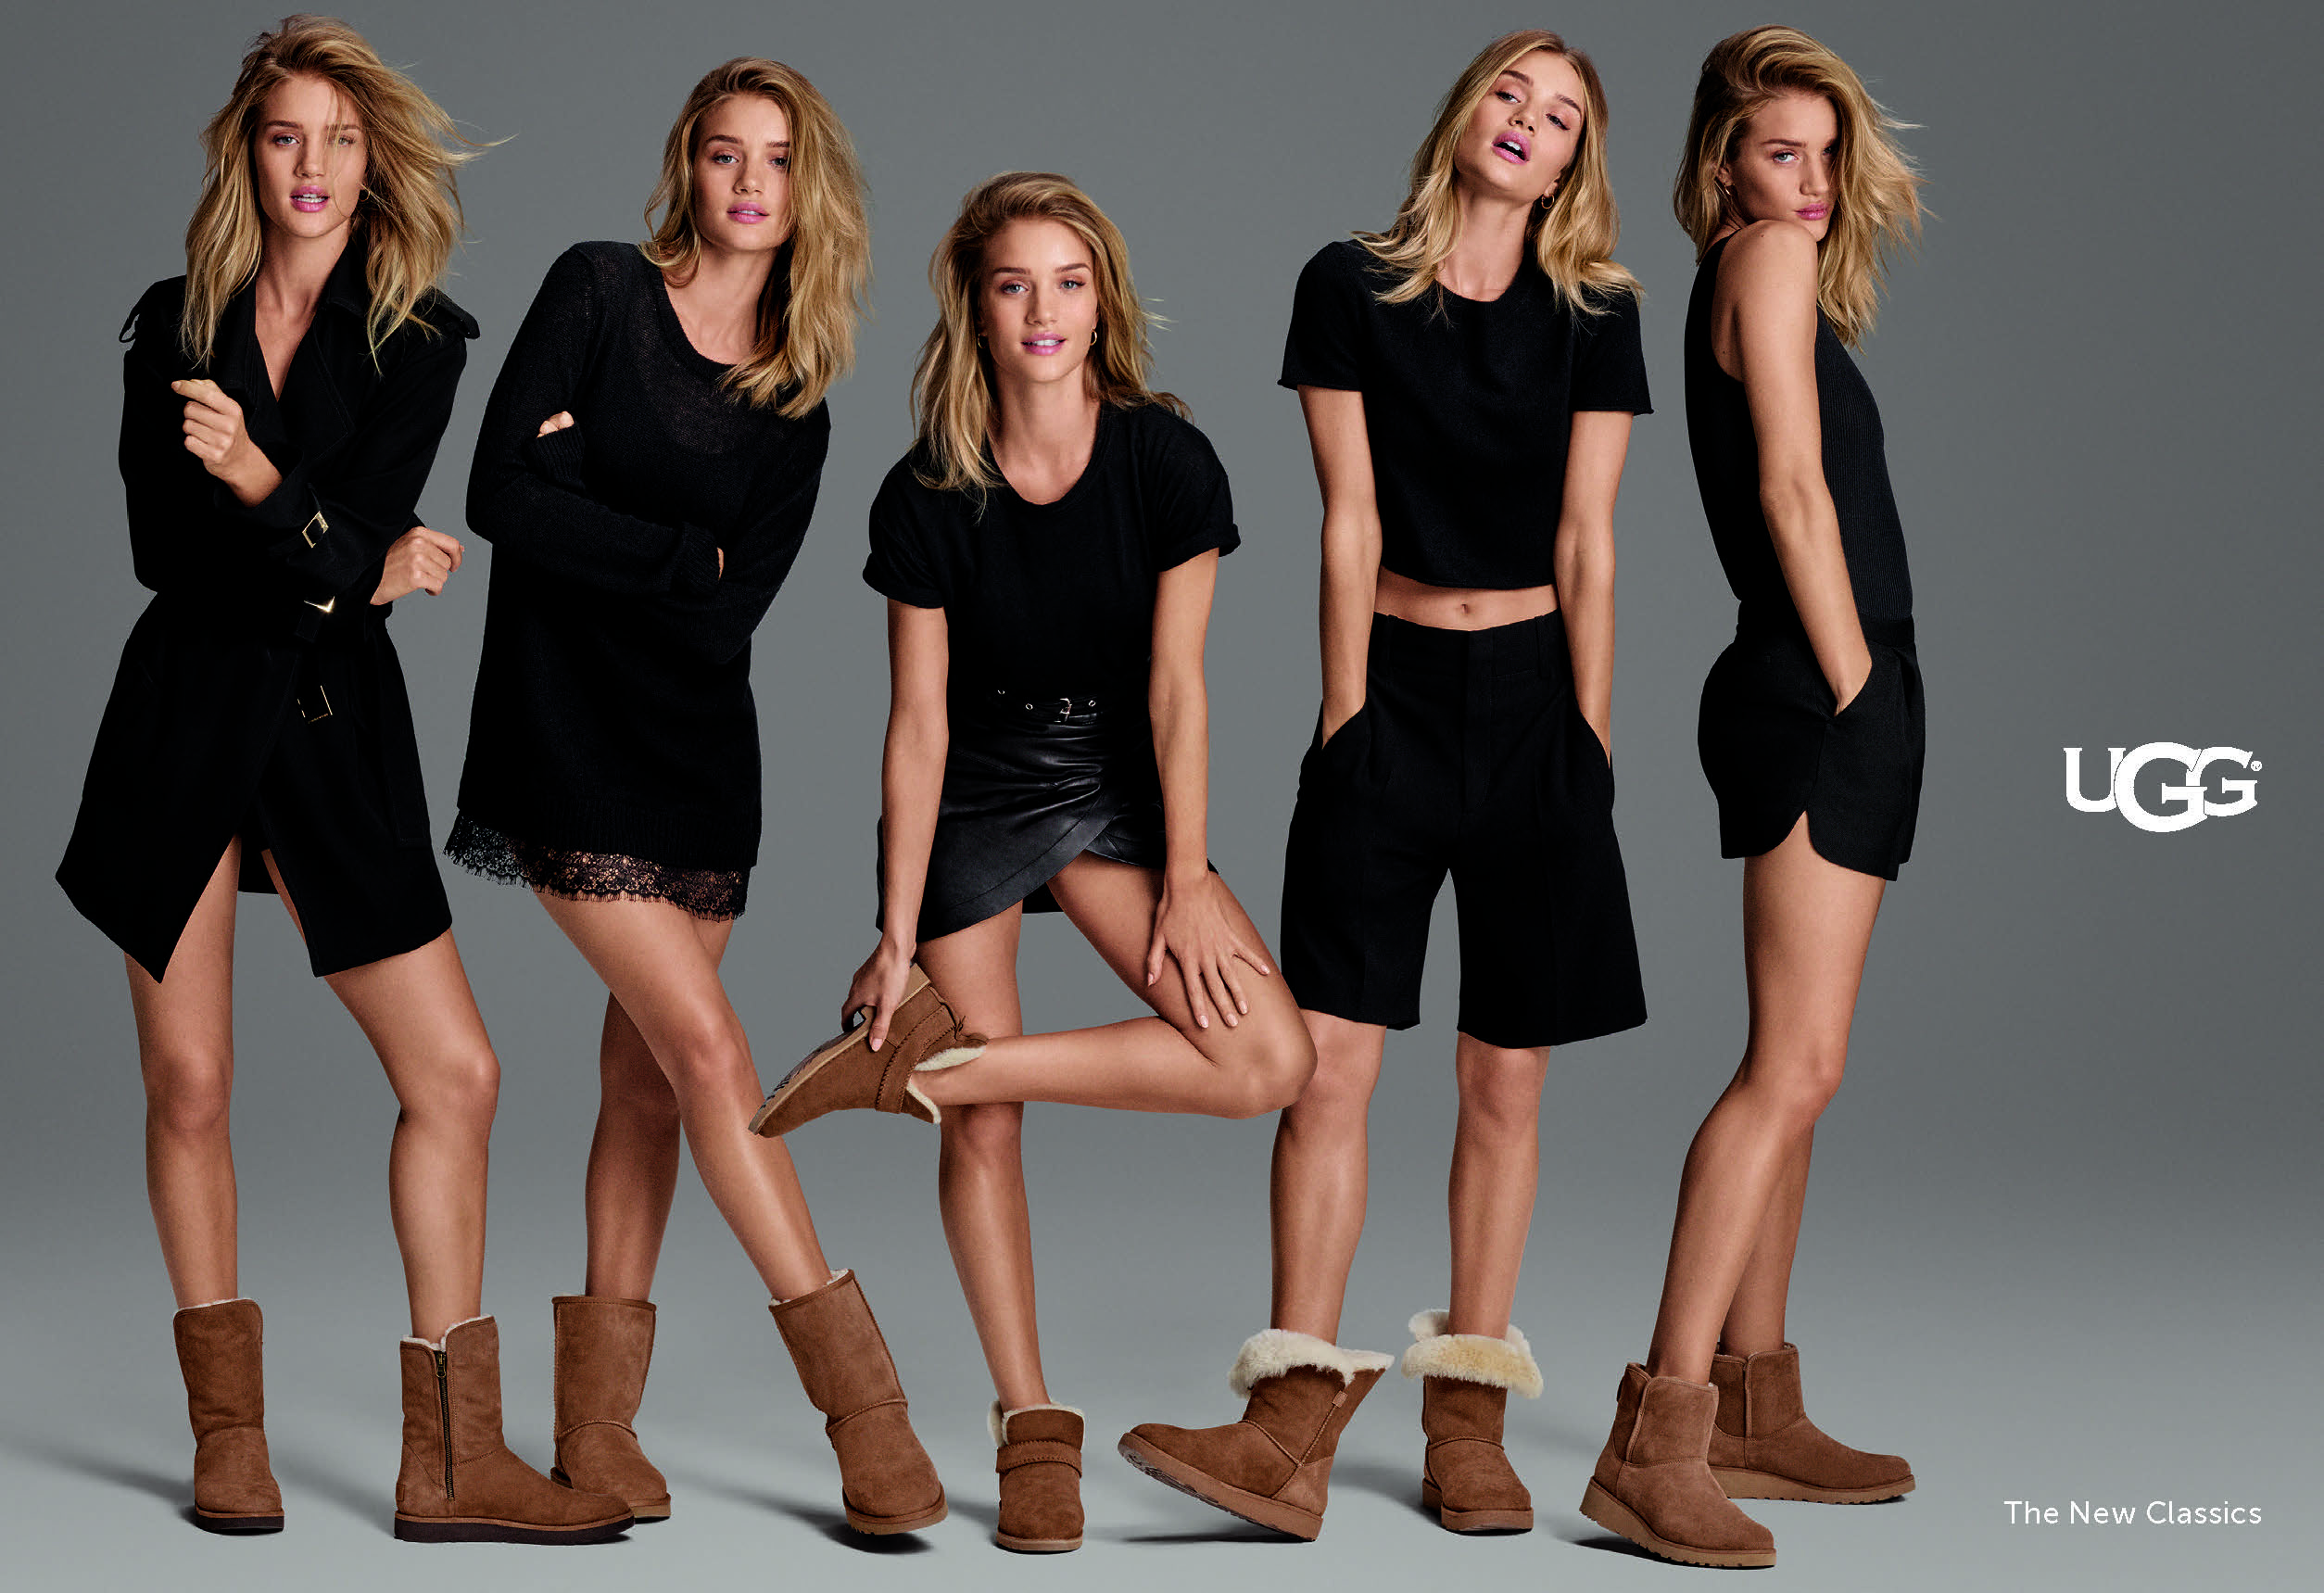 Rosie Huntington-Whiteley in the Ugg campaign.